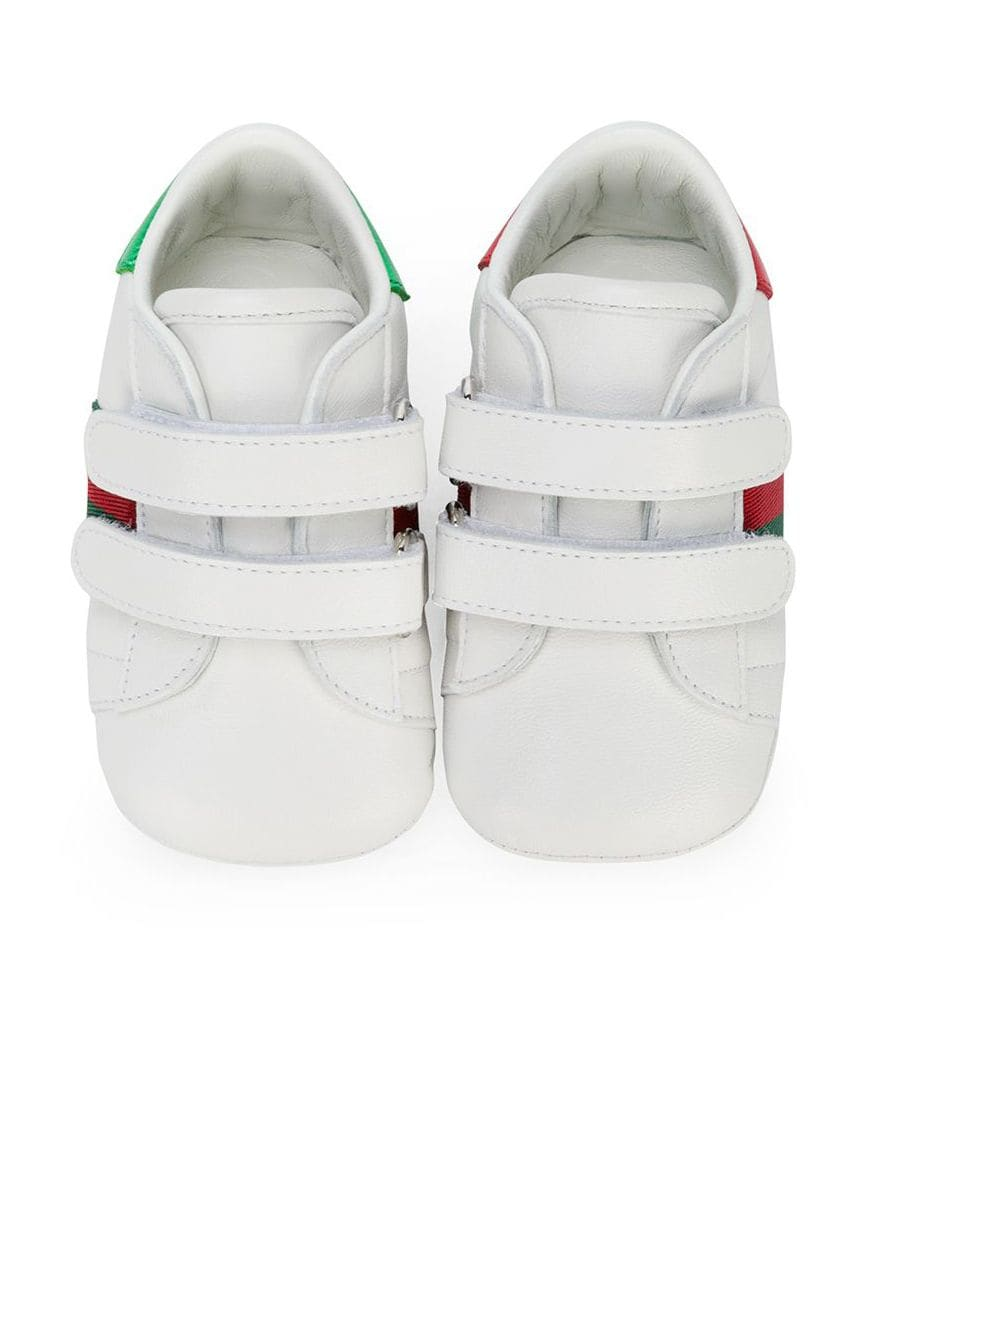 Gucci Kids Baby leather sneakers with Web - Weiß von Gucci Kids